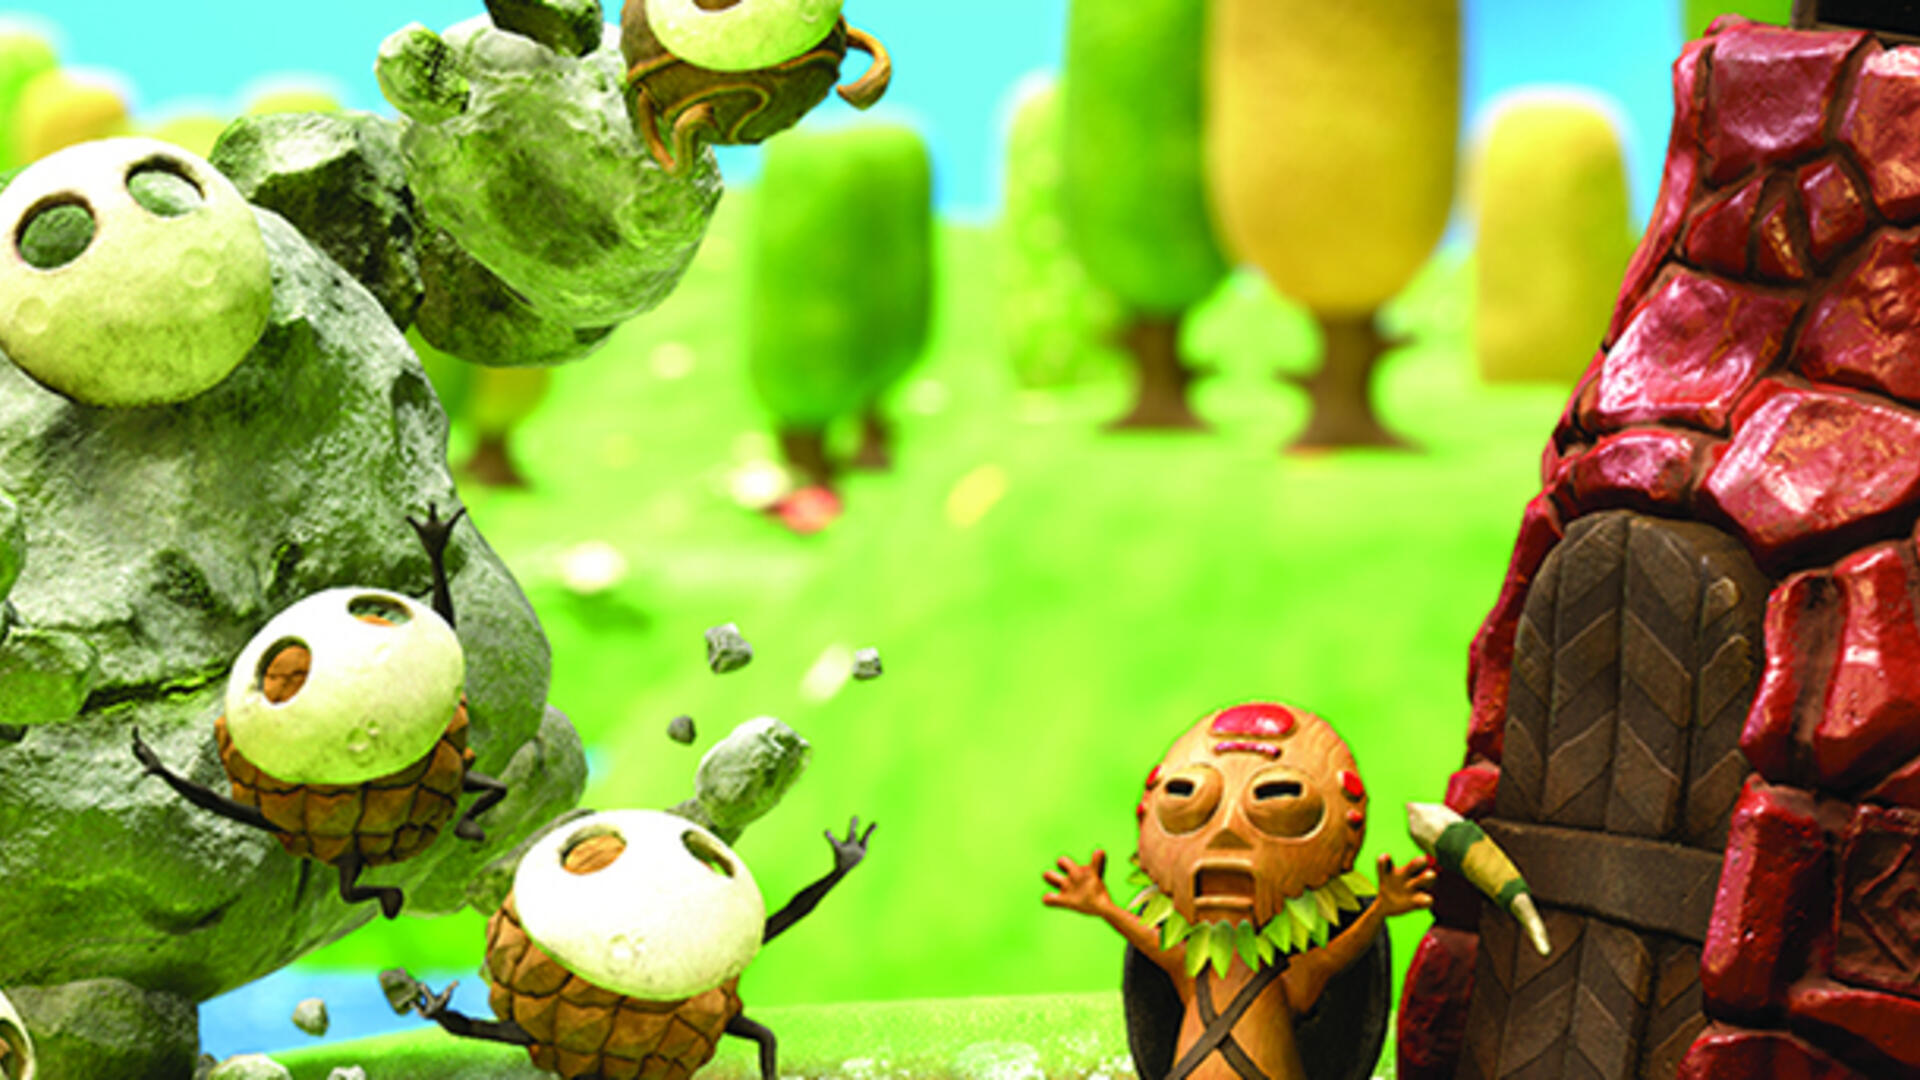 PixelJunk Monsters 2 Is Finally Happening, And It's Coming to Switch